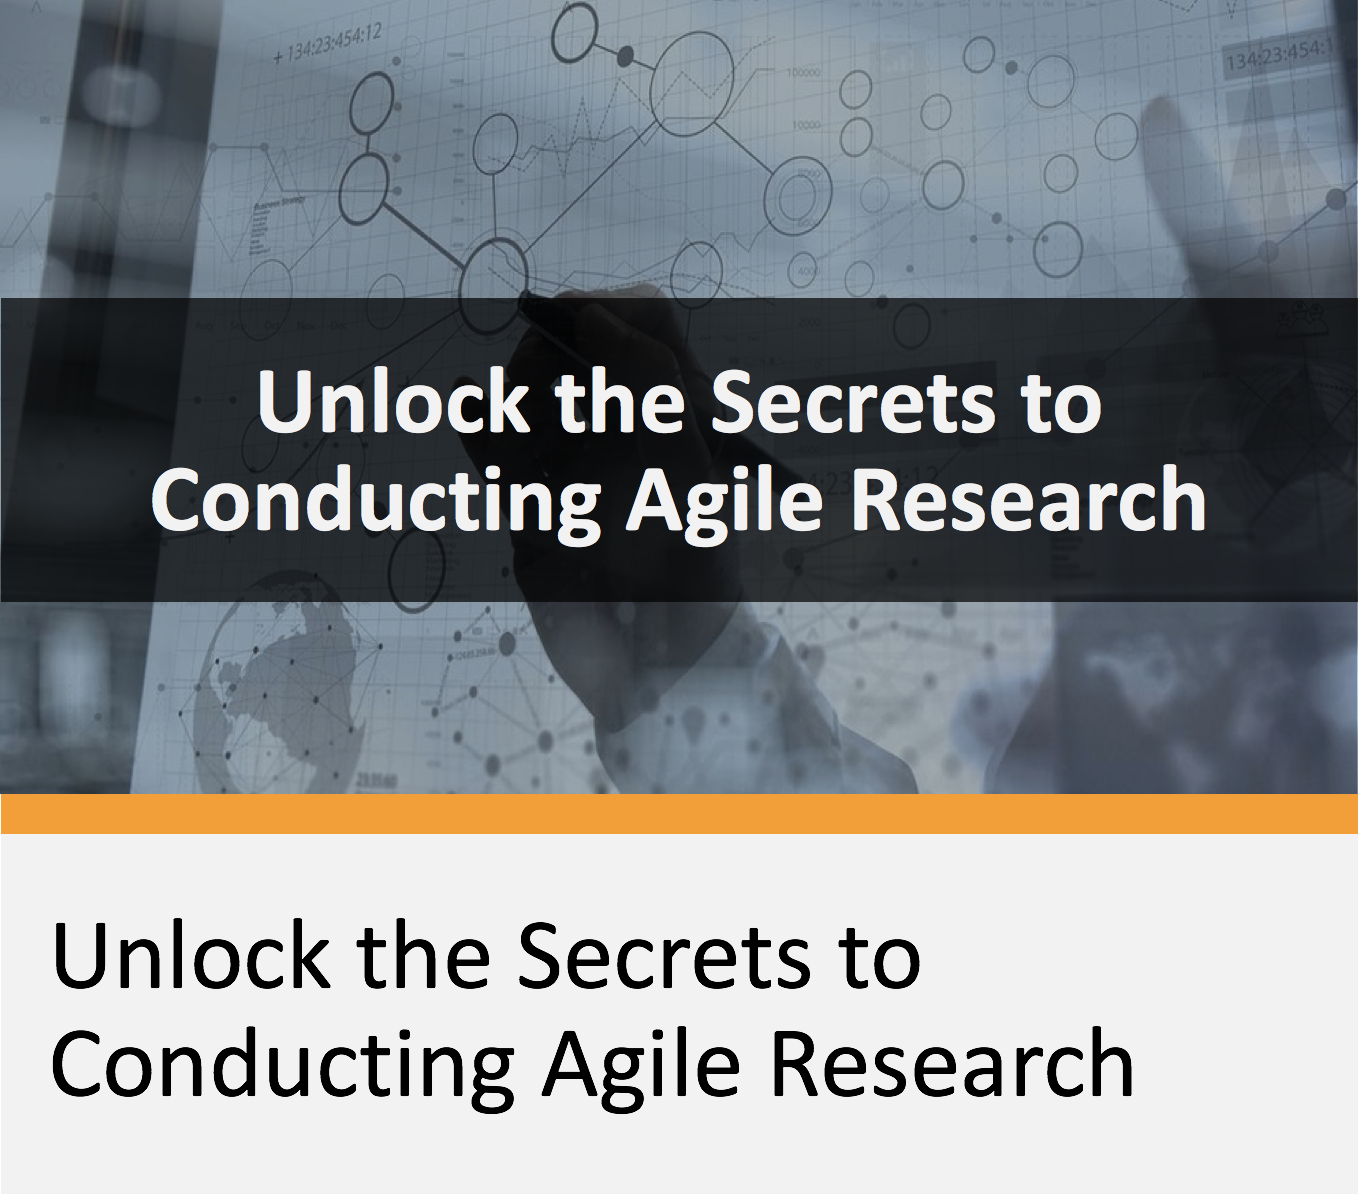 Unlock the Secrets to Conducting Agile Research